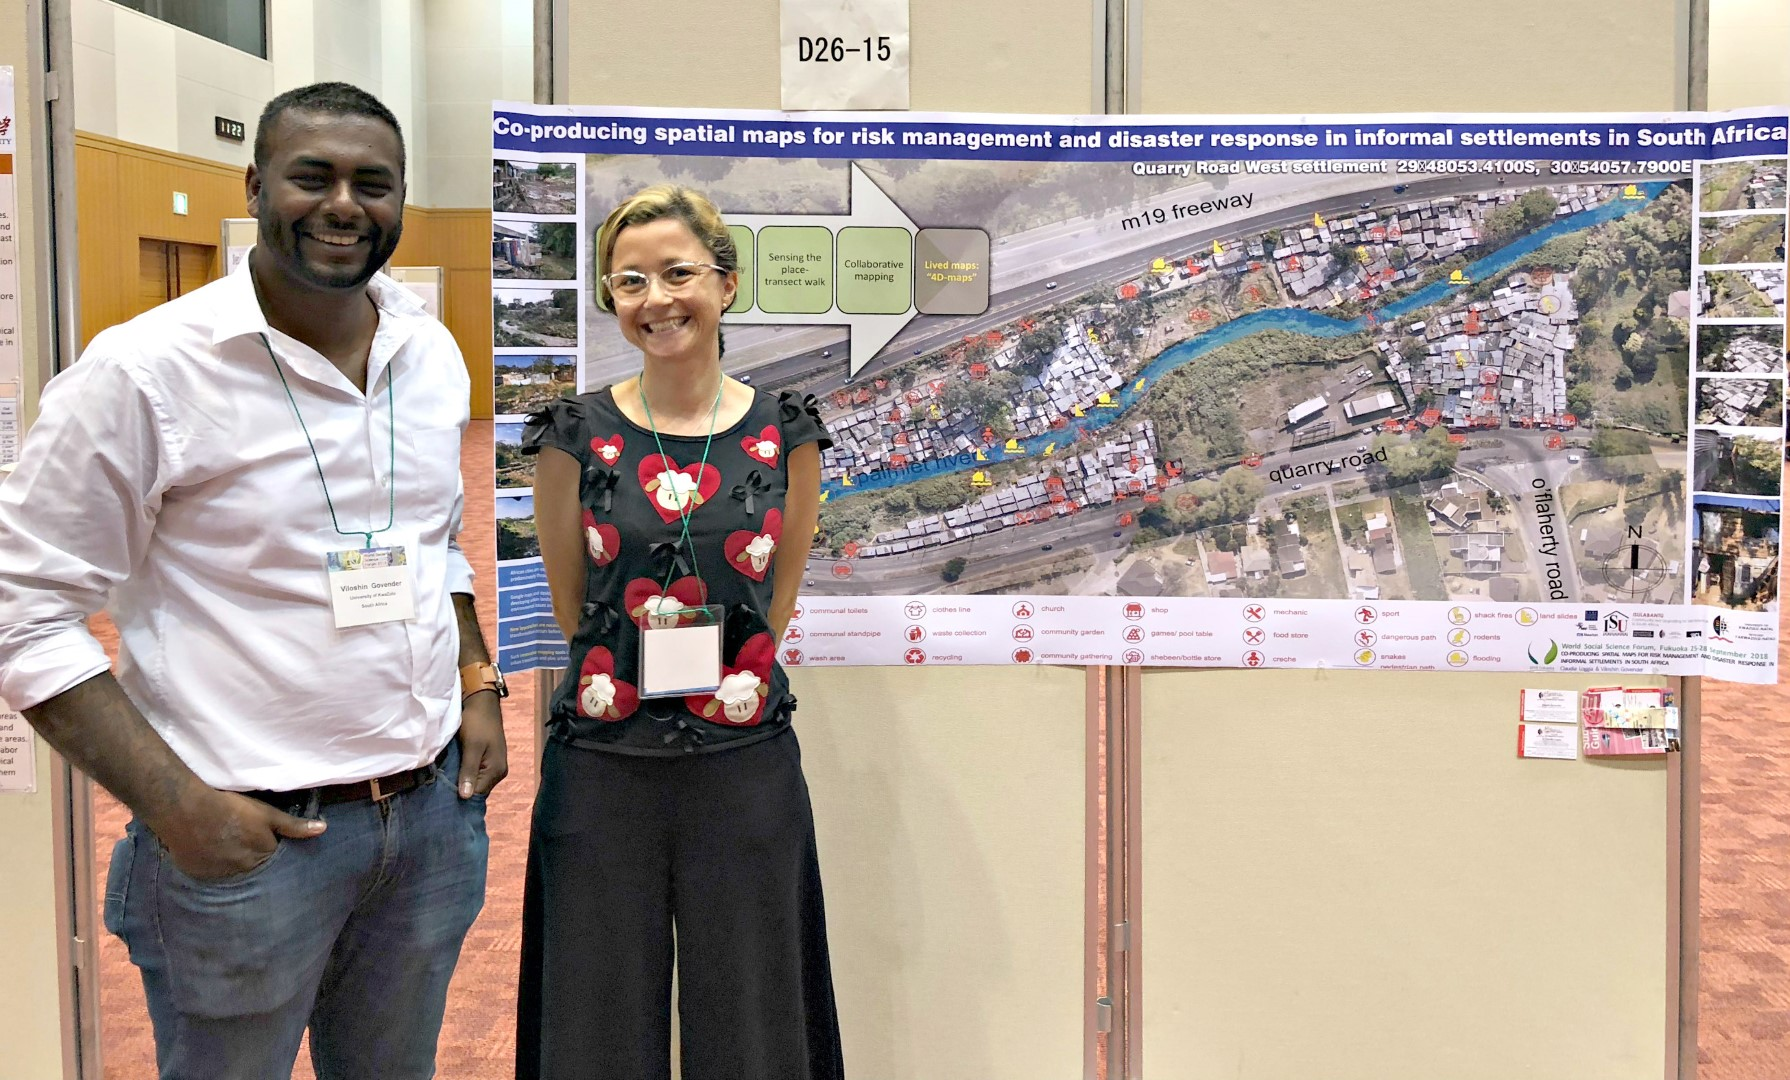 Mr Viloshin Govender and Dr Claudia Loggia seen with their research poster at the World Social Science Forum.